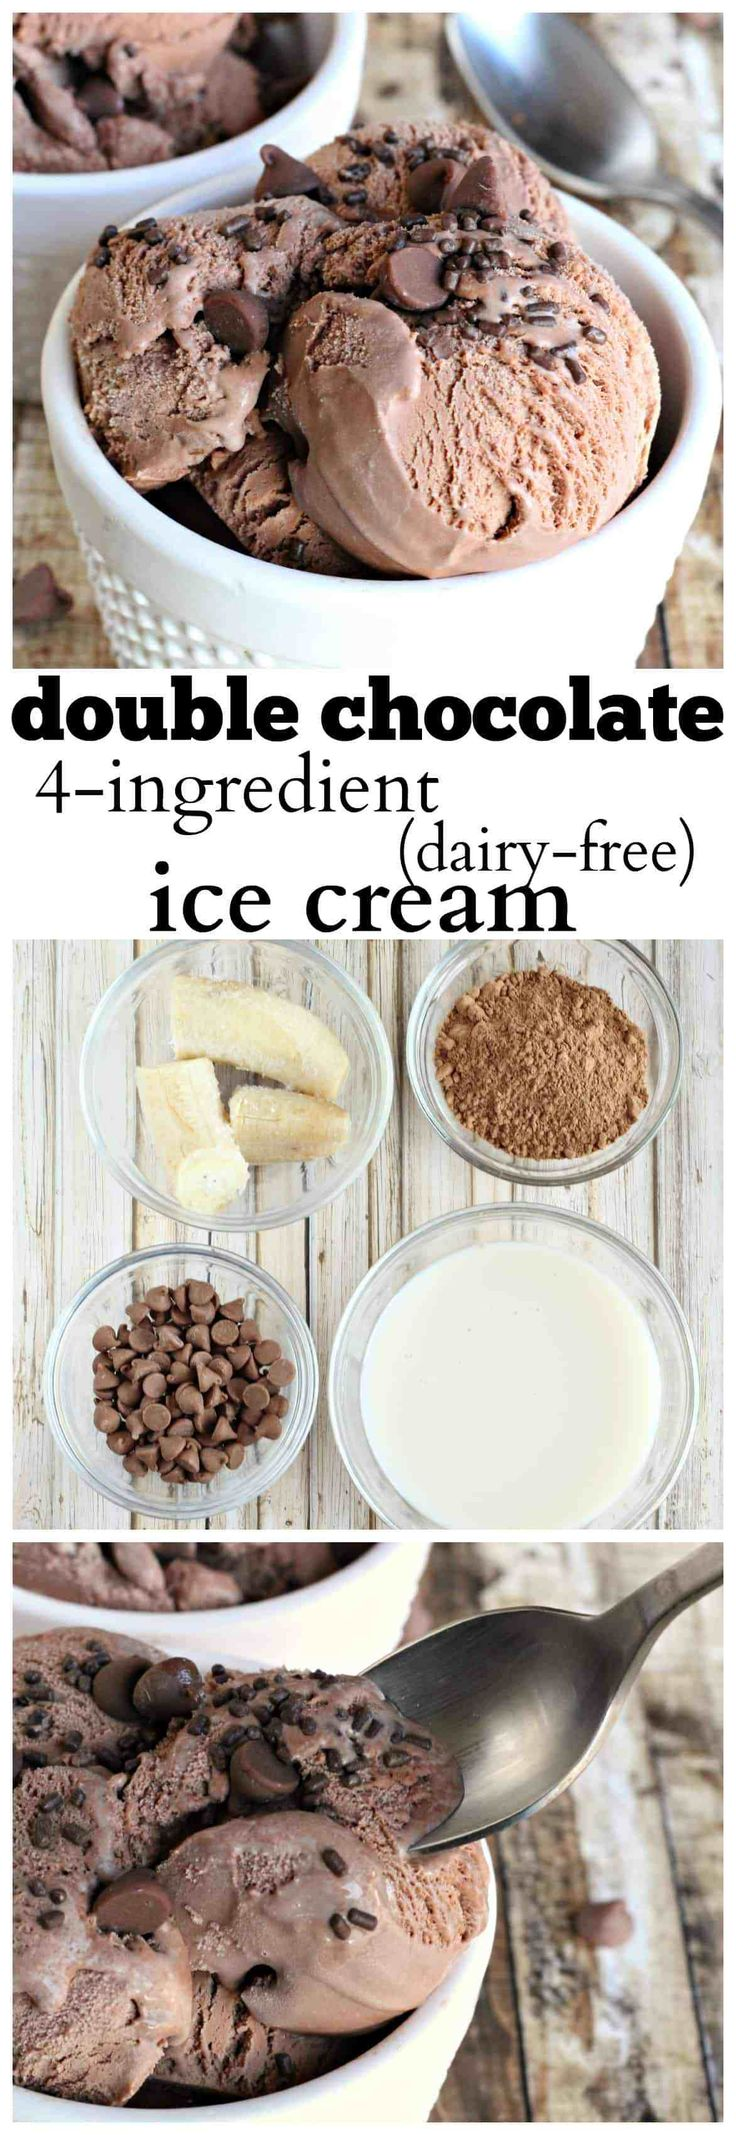 Double Chocolate, dairy-free ice cream, made with only 4 ingredients. A rich chocolate, almond milk ice cream treat for those avoiding dairy.